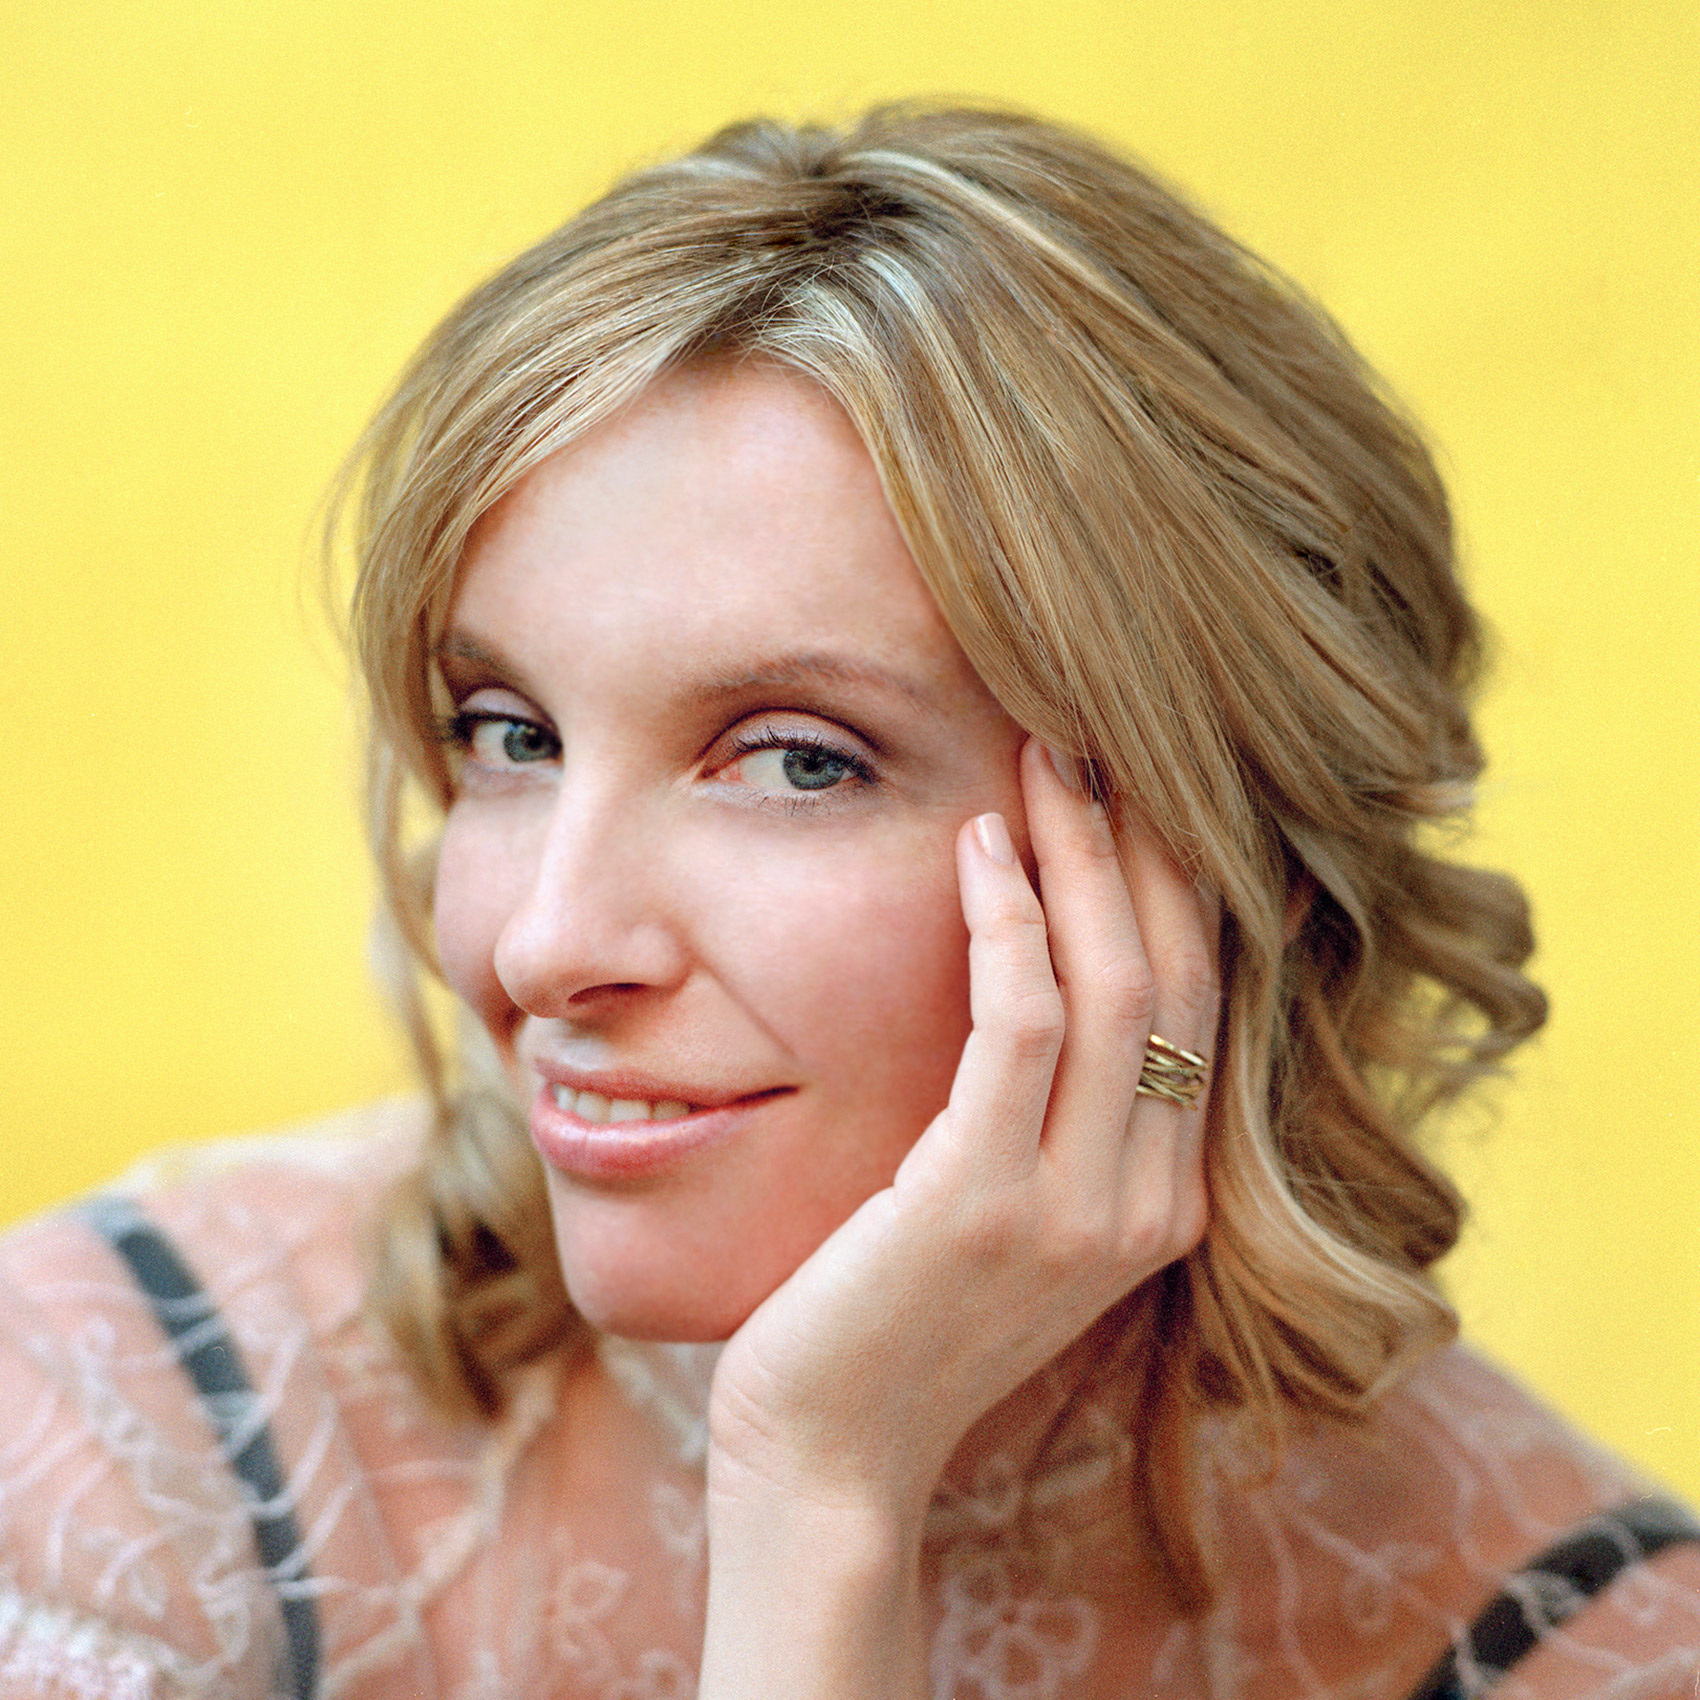 actress-toni-collette-by-toronto-photographer-john-hryniuk